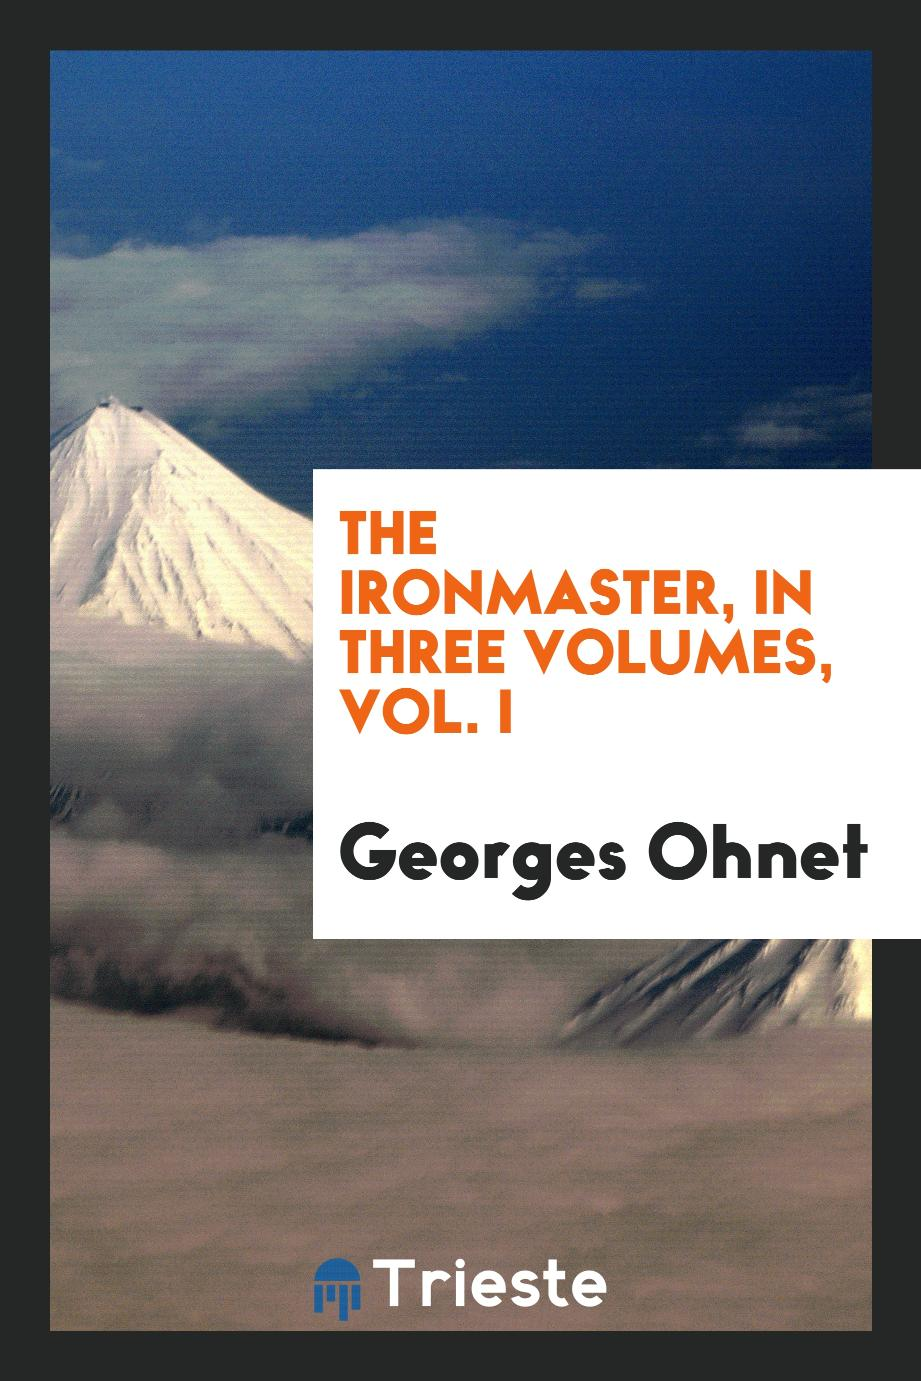 The ironmaster, In three Volumes, Vol. I